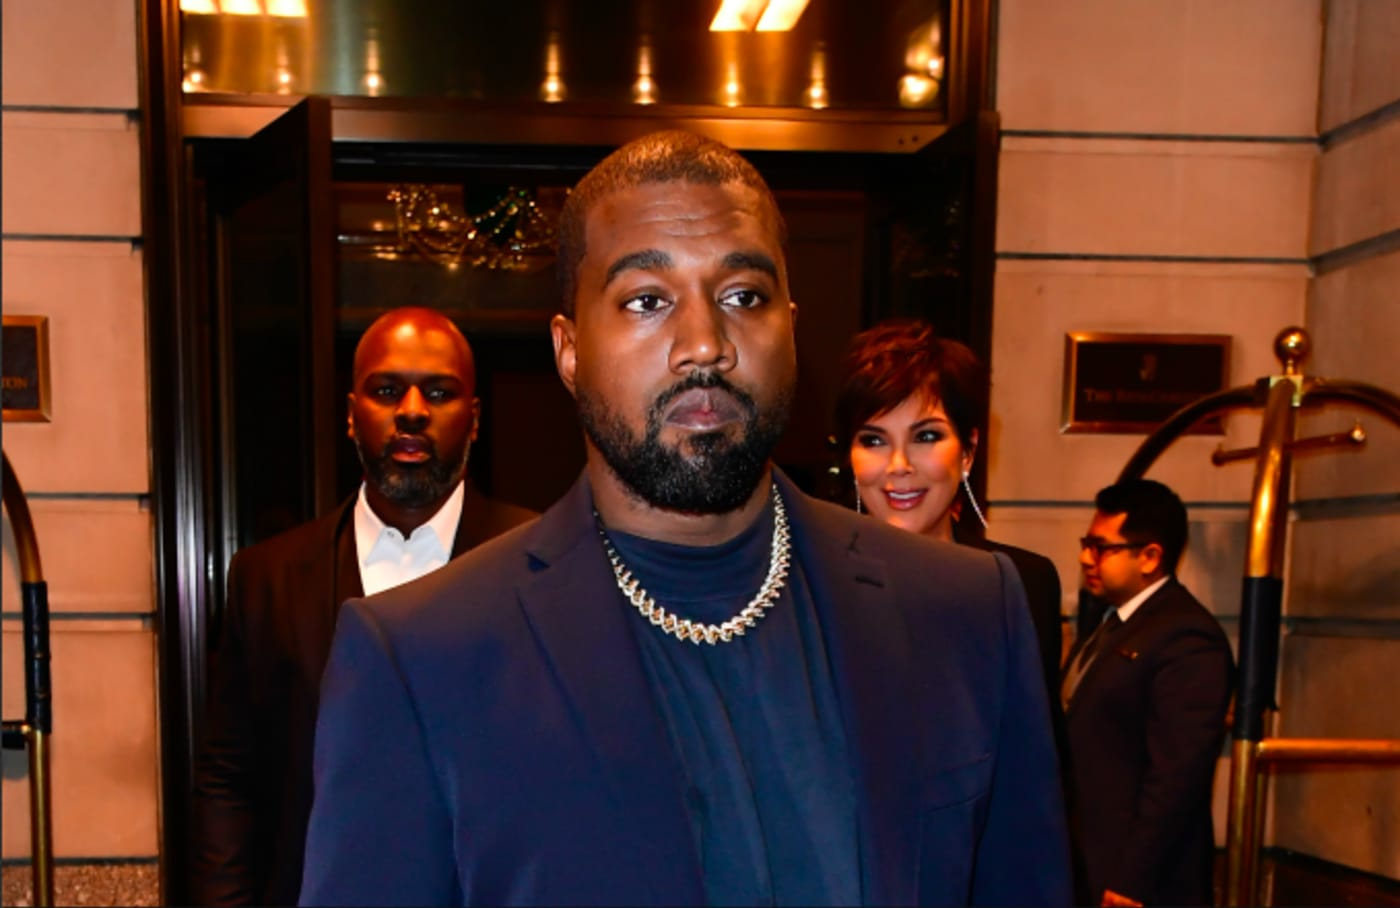 Kanye West is seen out and about in Manhattan